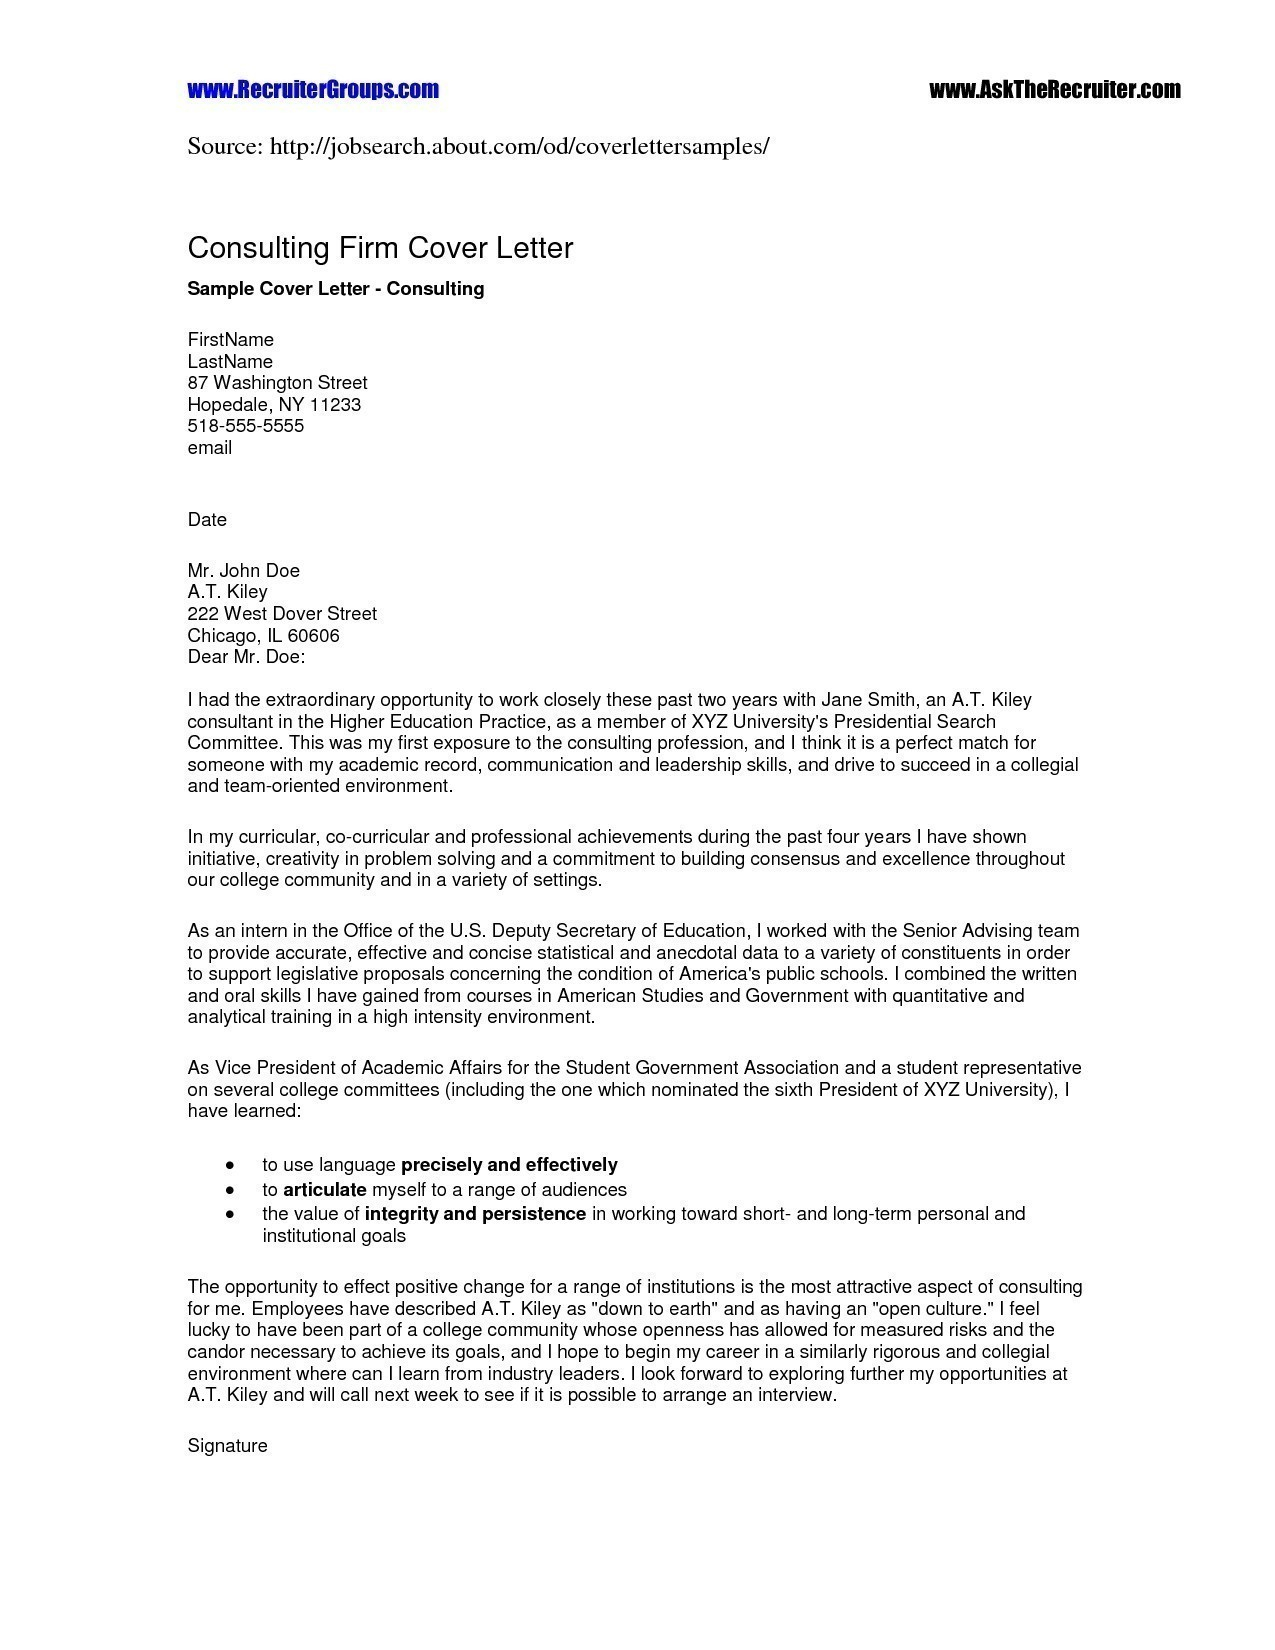 Company Offer Letter Template - How to Write Job Fer Letter Fresh Job Fer Letter Sample Best Job